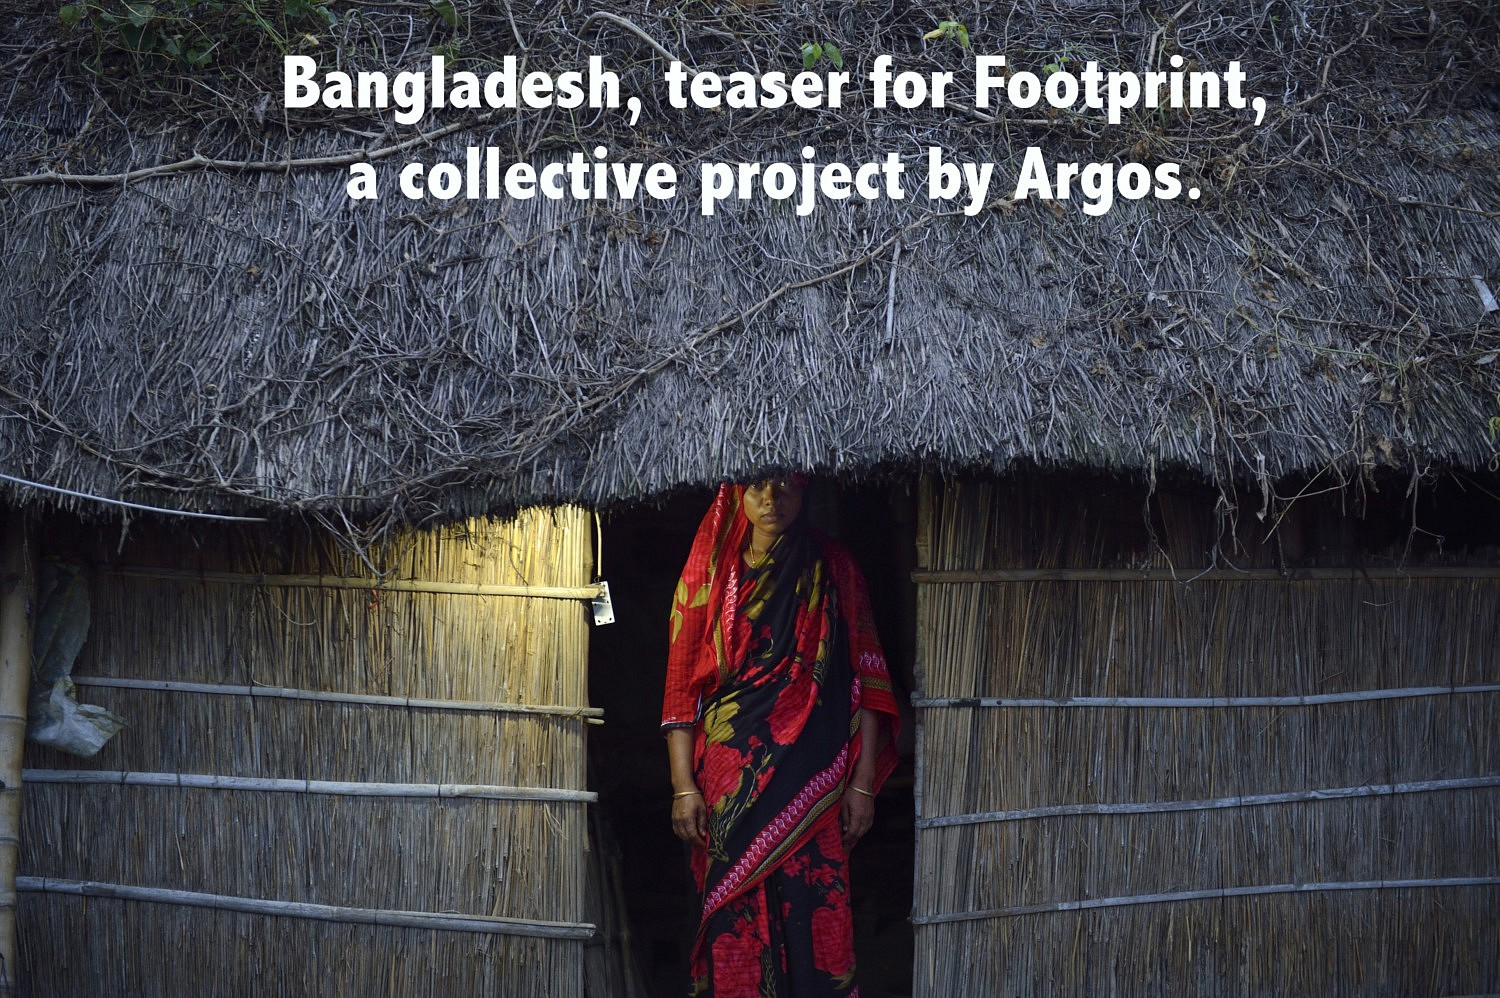 Teaser for Footprint collective project | Teaser for Footprint collective project